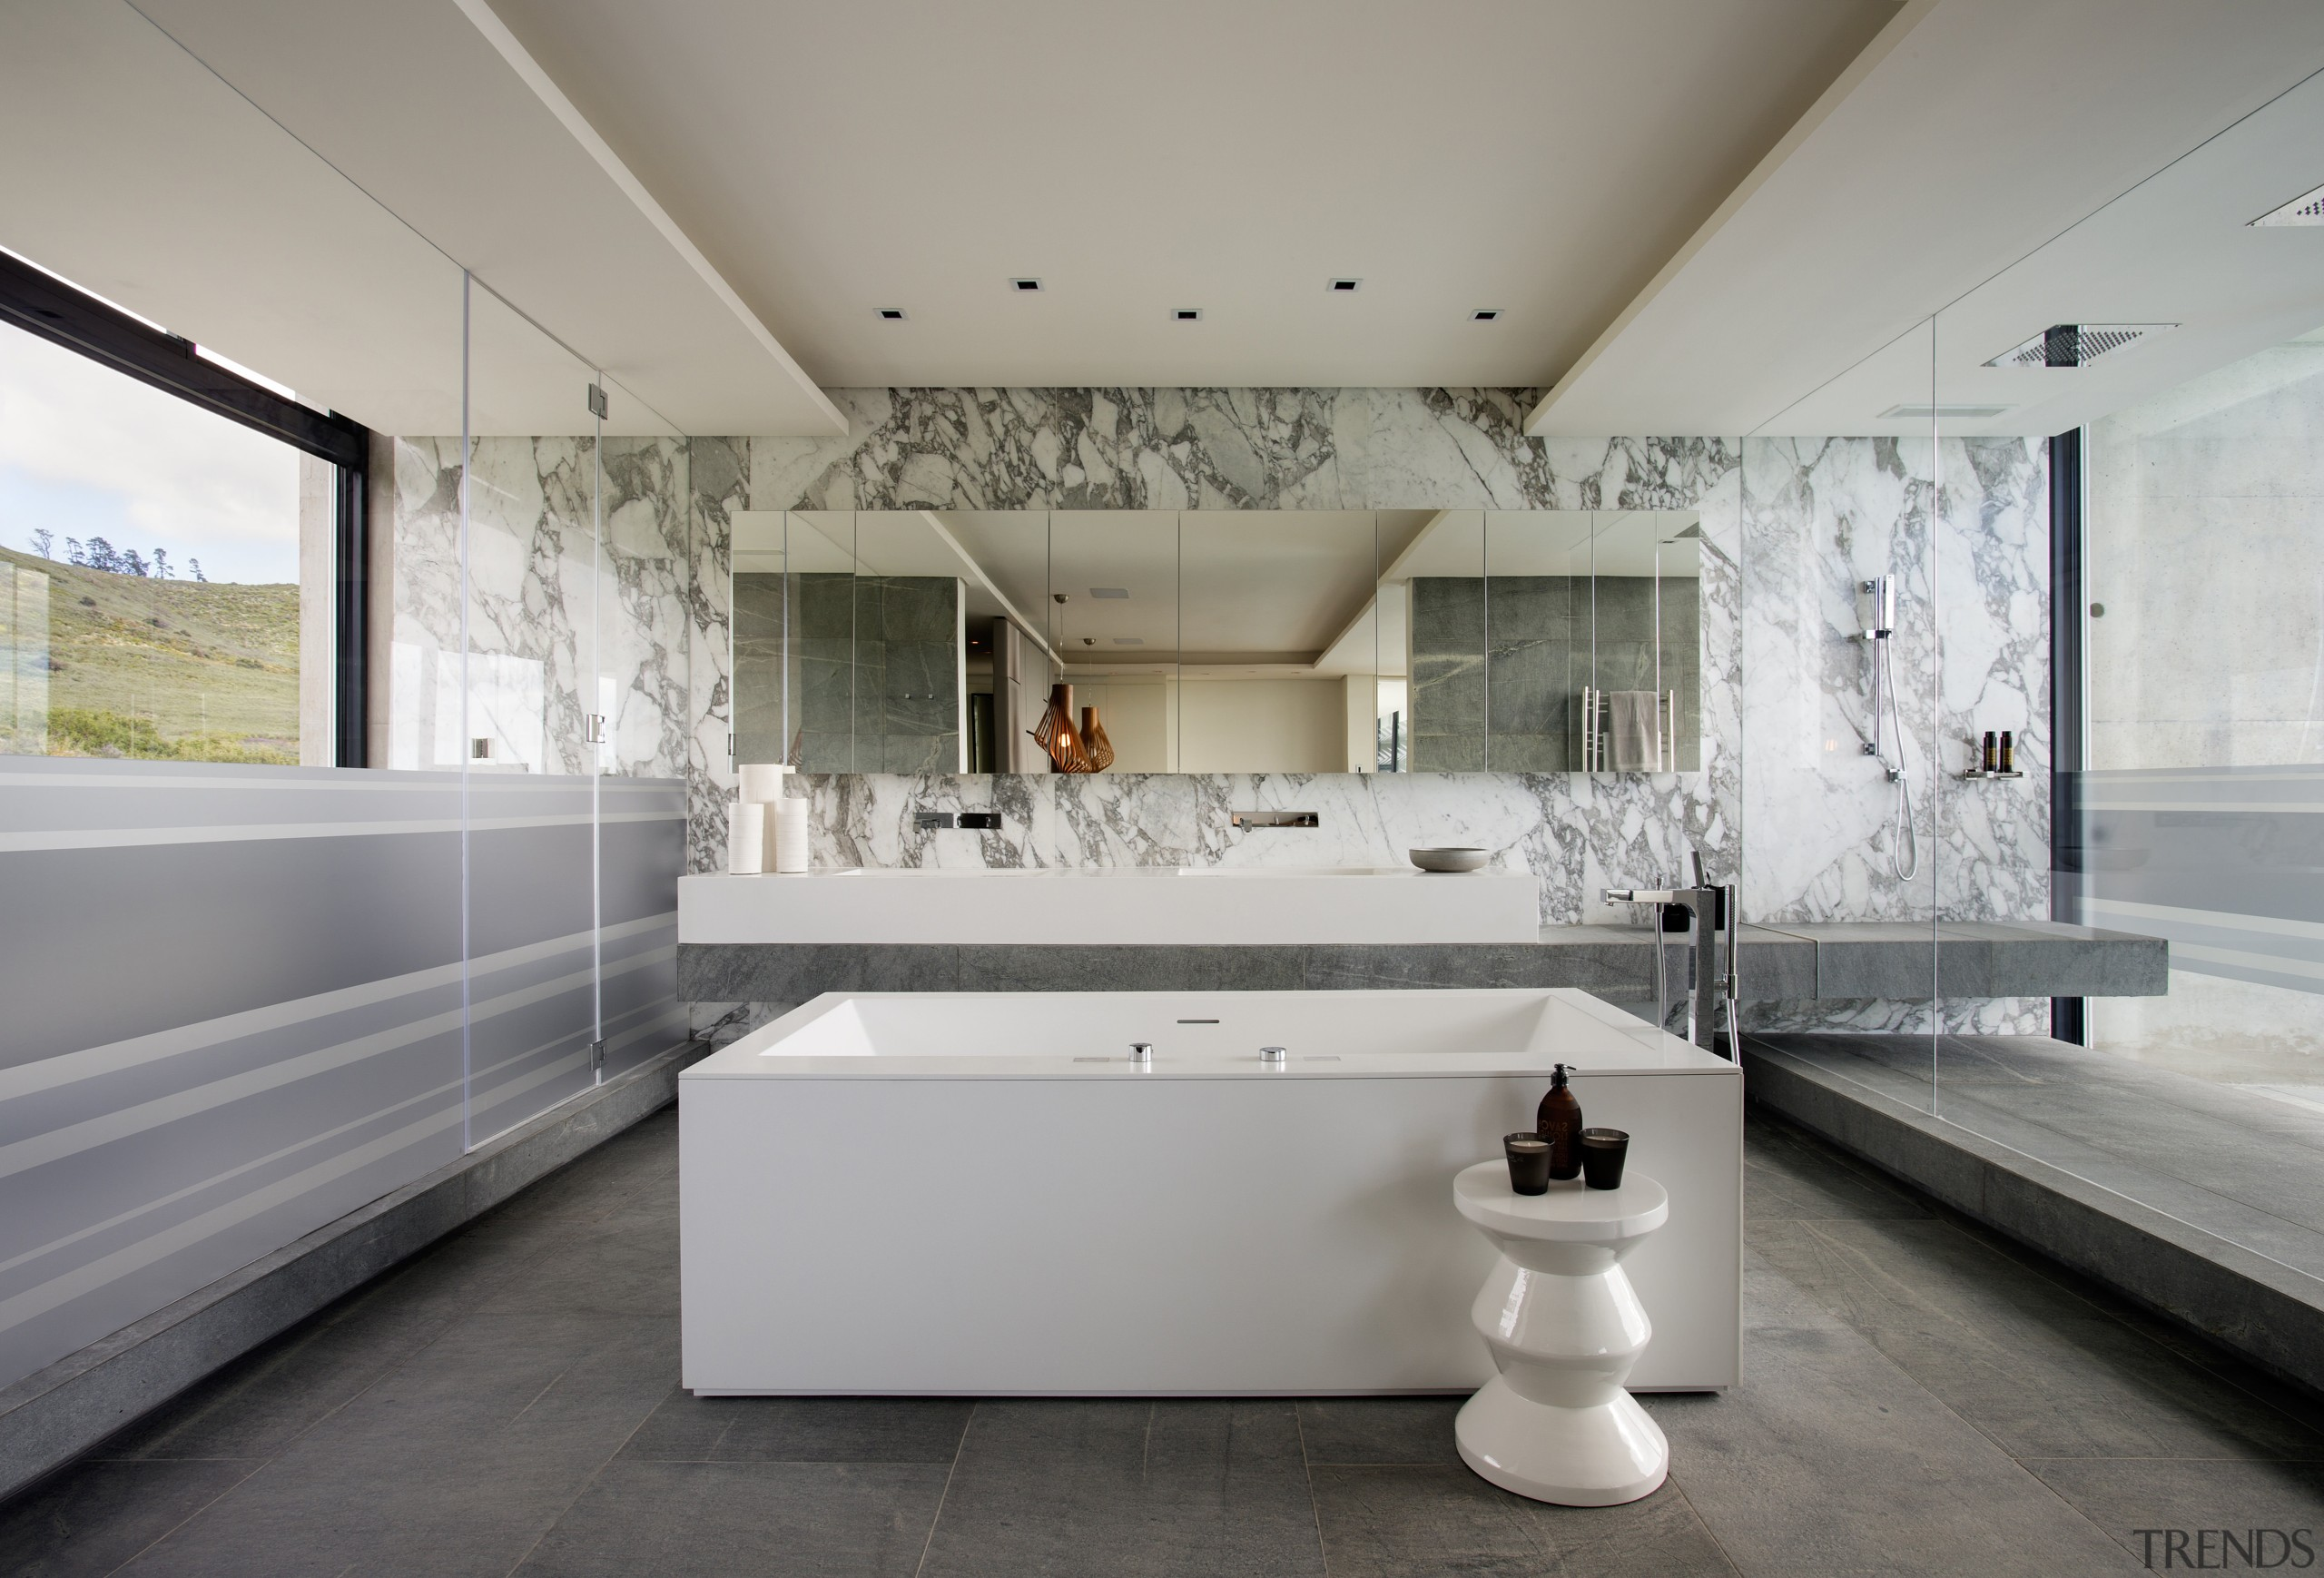 In this master bathroom, both the shower on architecture, bathroom, ceiling, daylighting, estate, home, interior design, gray